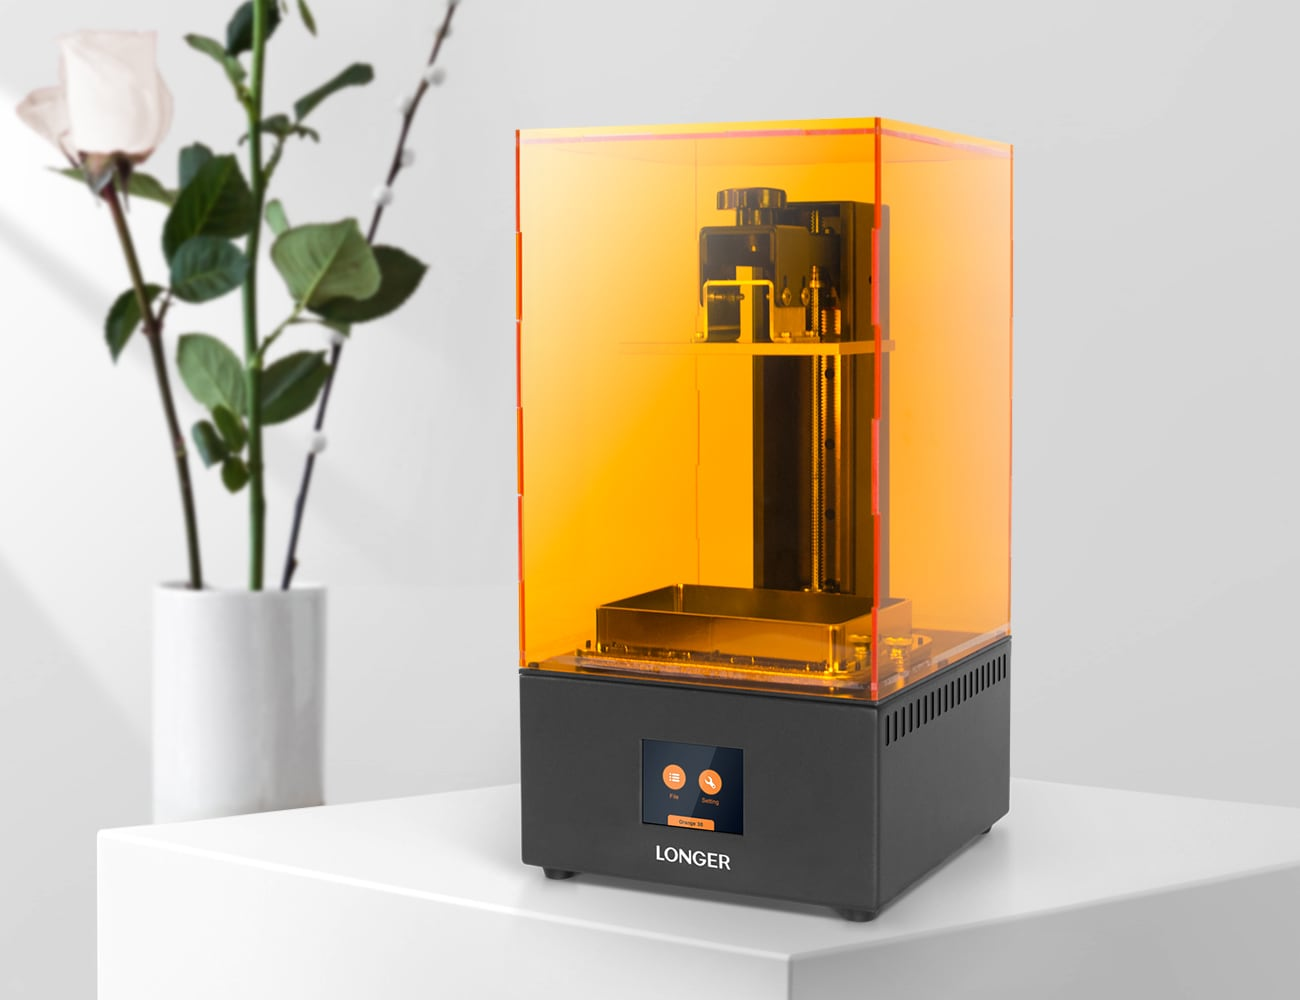 Longer Orange 30 LCD SLA 3D Printer is an affordable way to create models